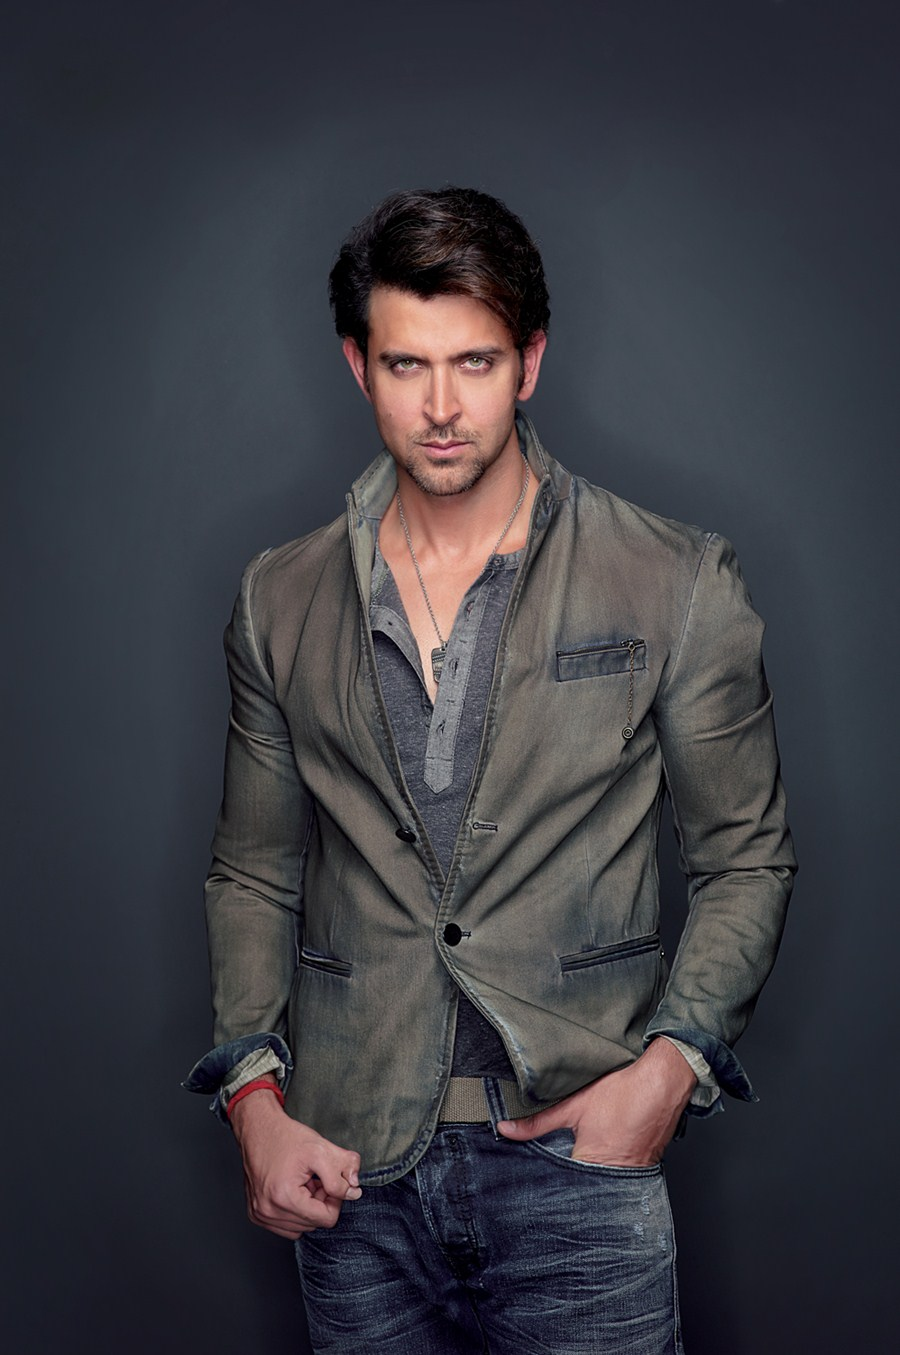 hrithik roshan images, hd wallpapers, and photos - bollywood hungama